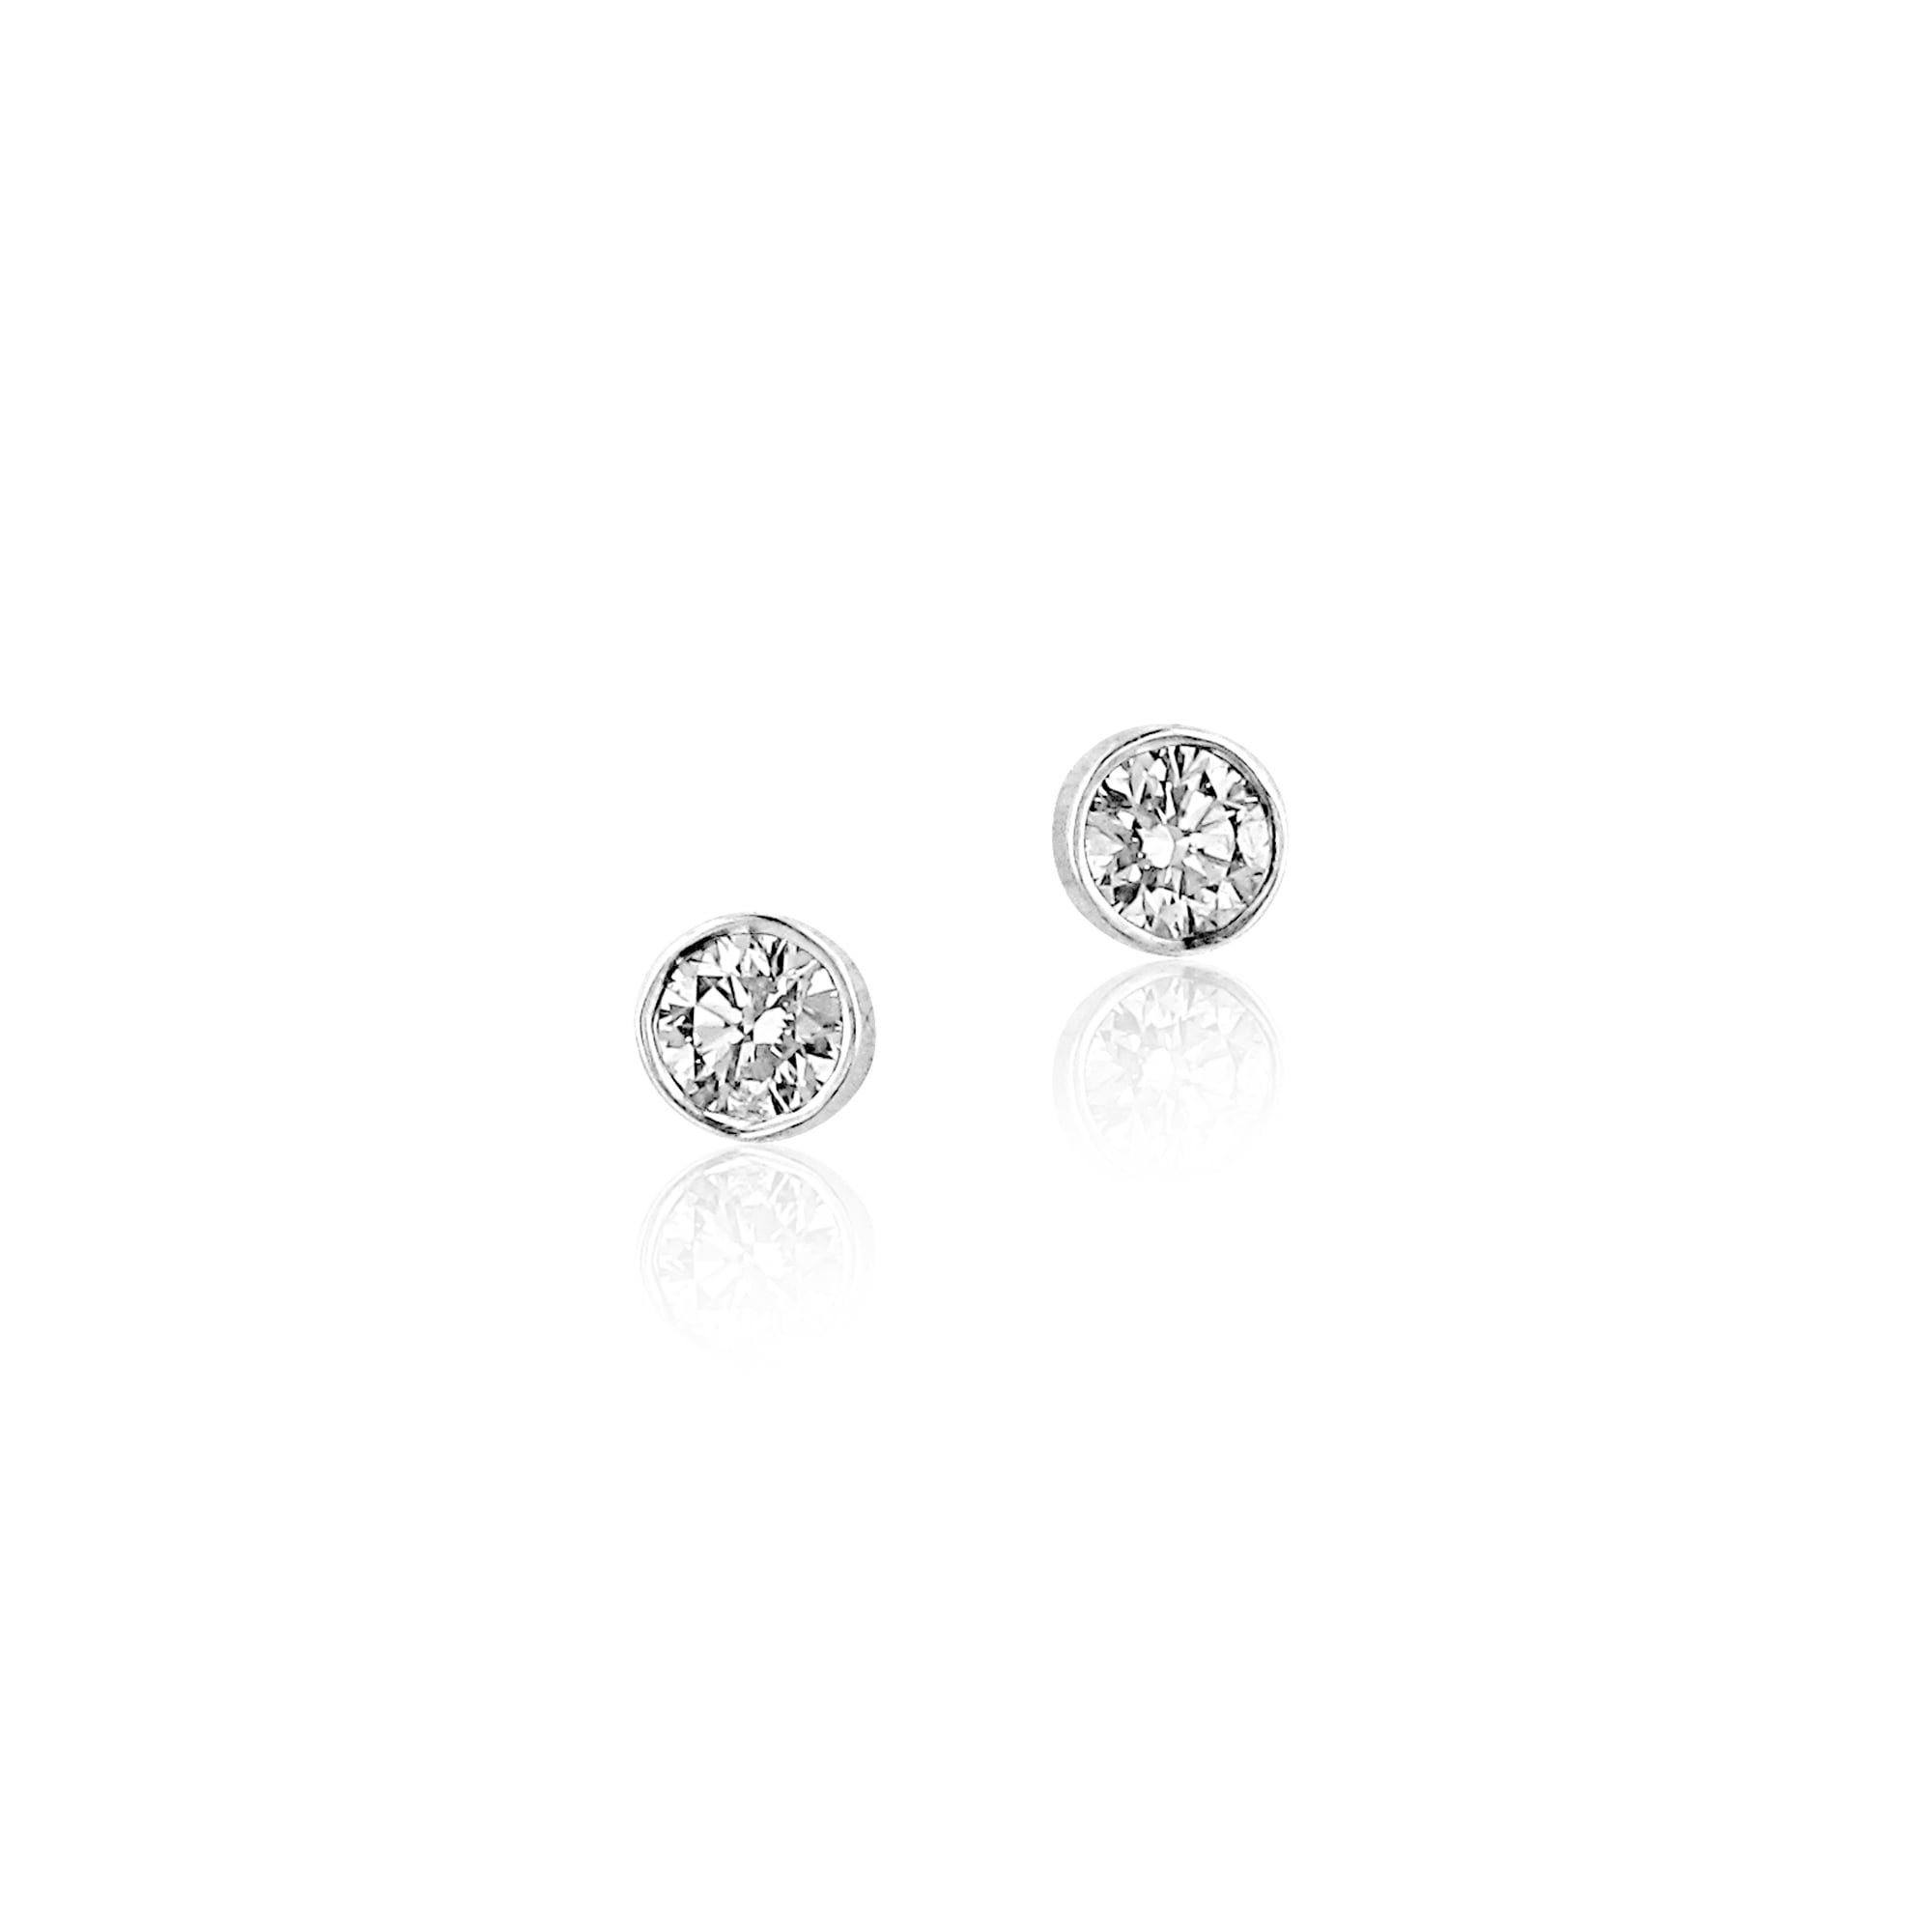 jewellery diamond round earrings graff classic collections stud